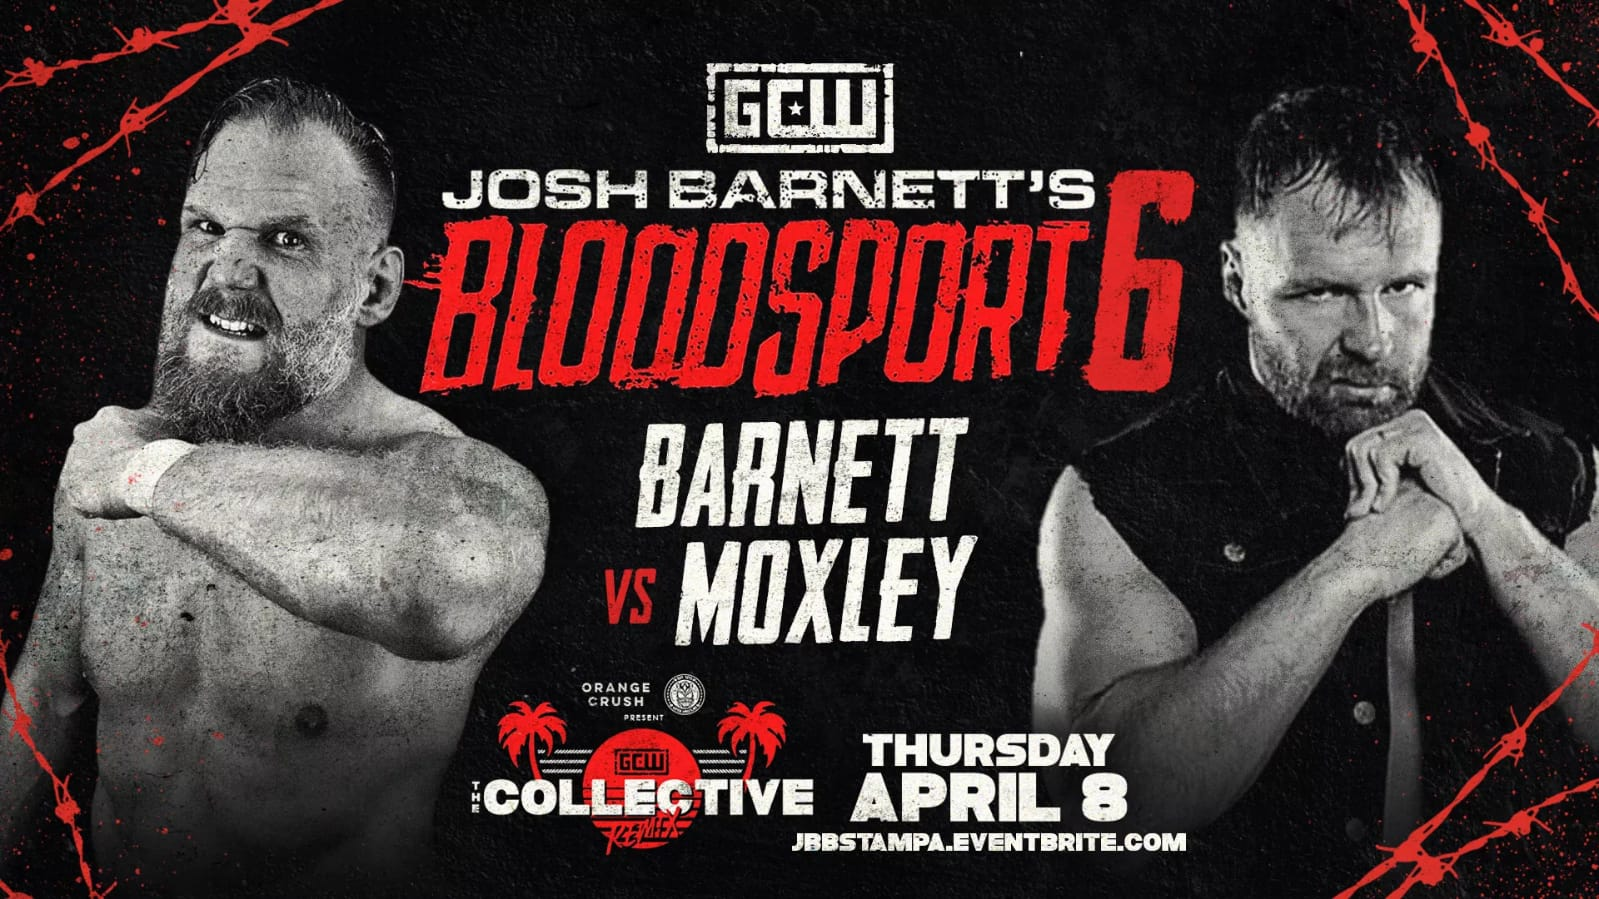 Jon Moxley Vs. Josh Barnett Announced For Bloodsport 6